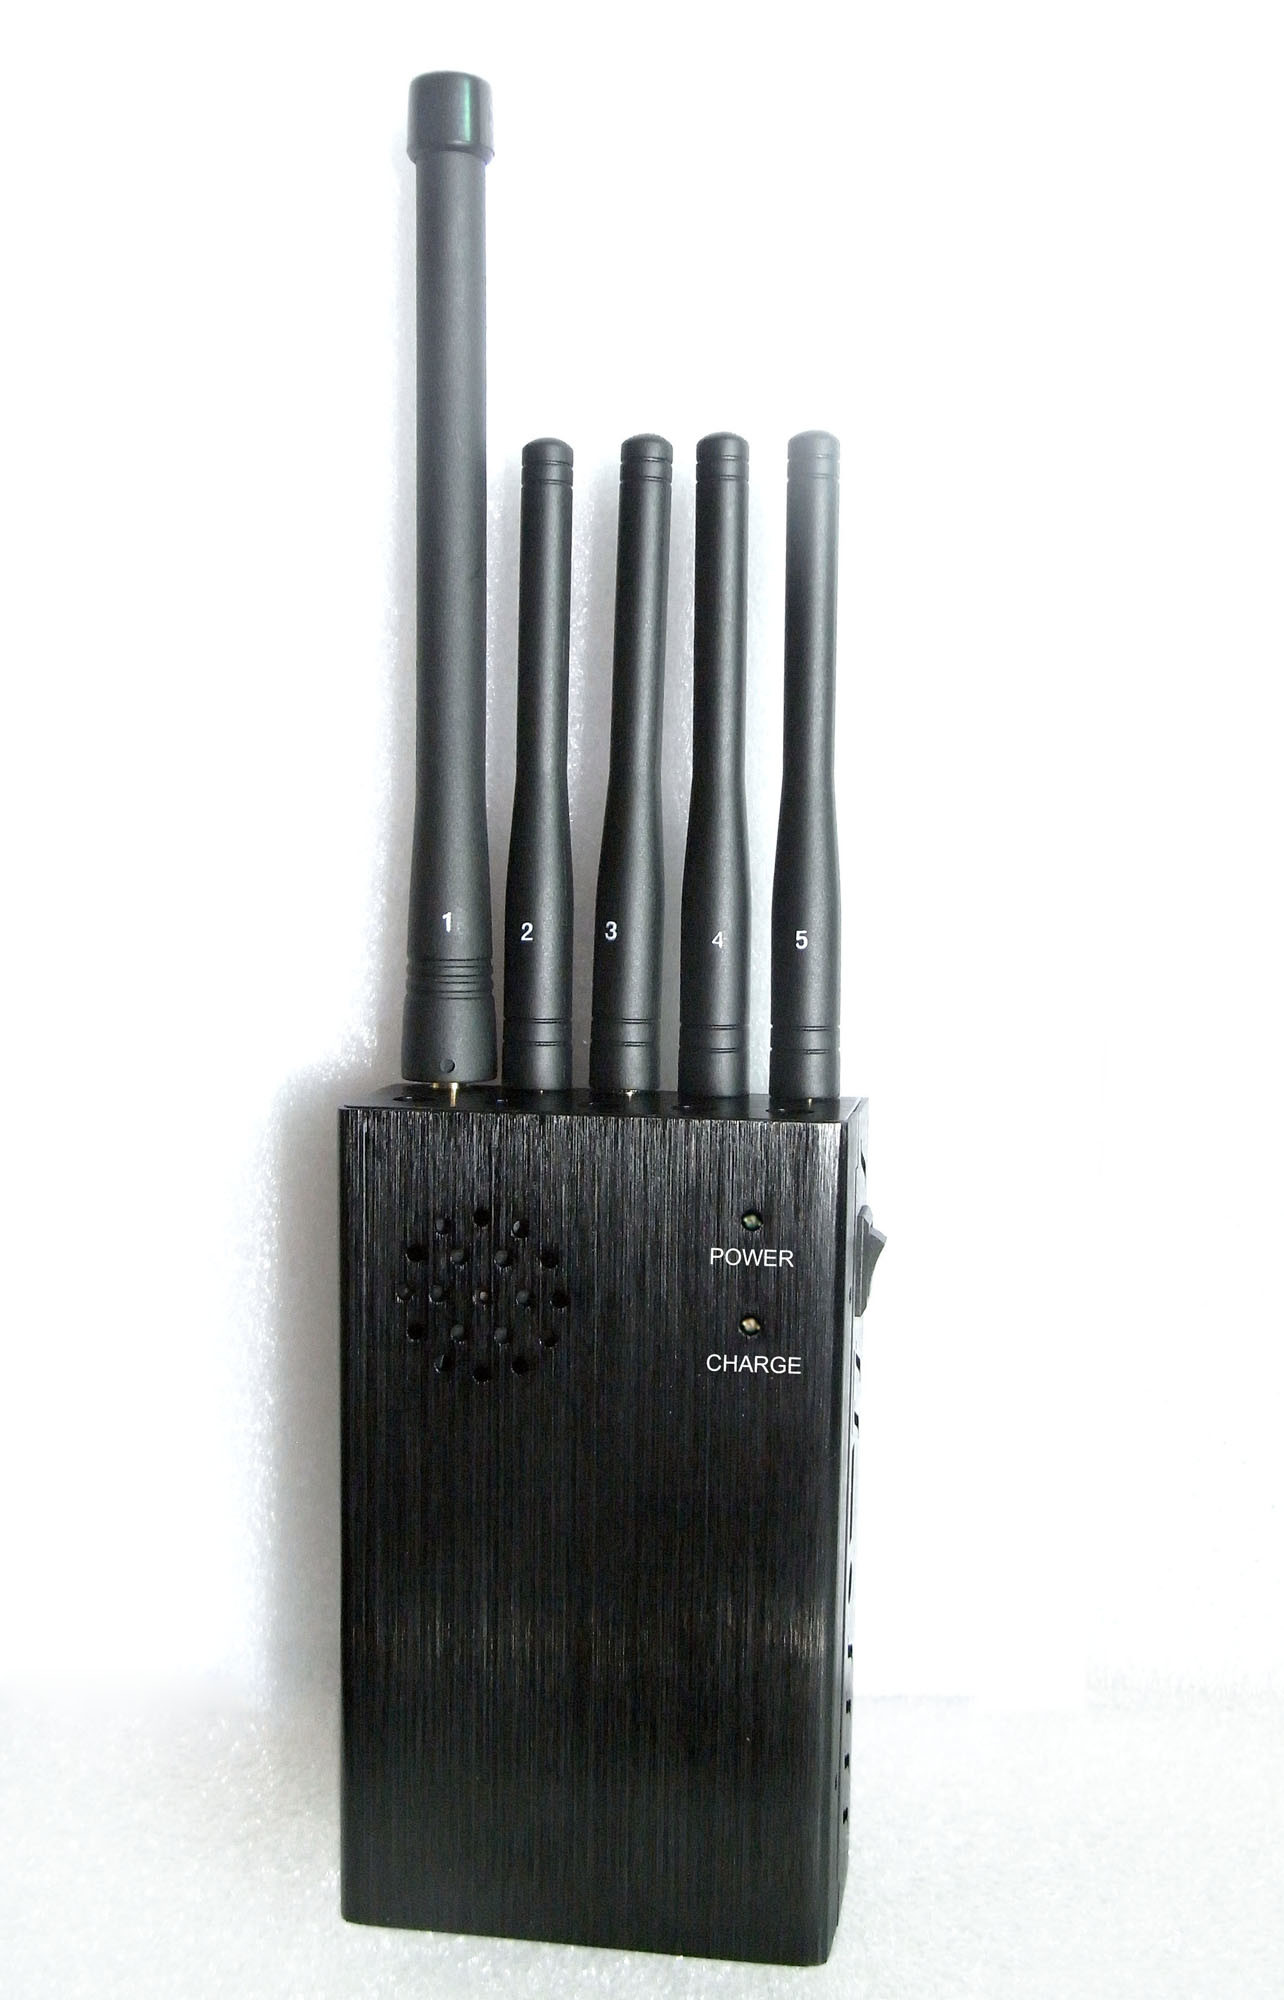 phone jammer device driver - China New 5 Antenna 3G 4glte Wimax Wireless Signal Jammers, High Power Handheld Portable Cellphone Wireless Jammer - China 5 Band Signal Blockers, Five Antennas Jammers